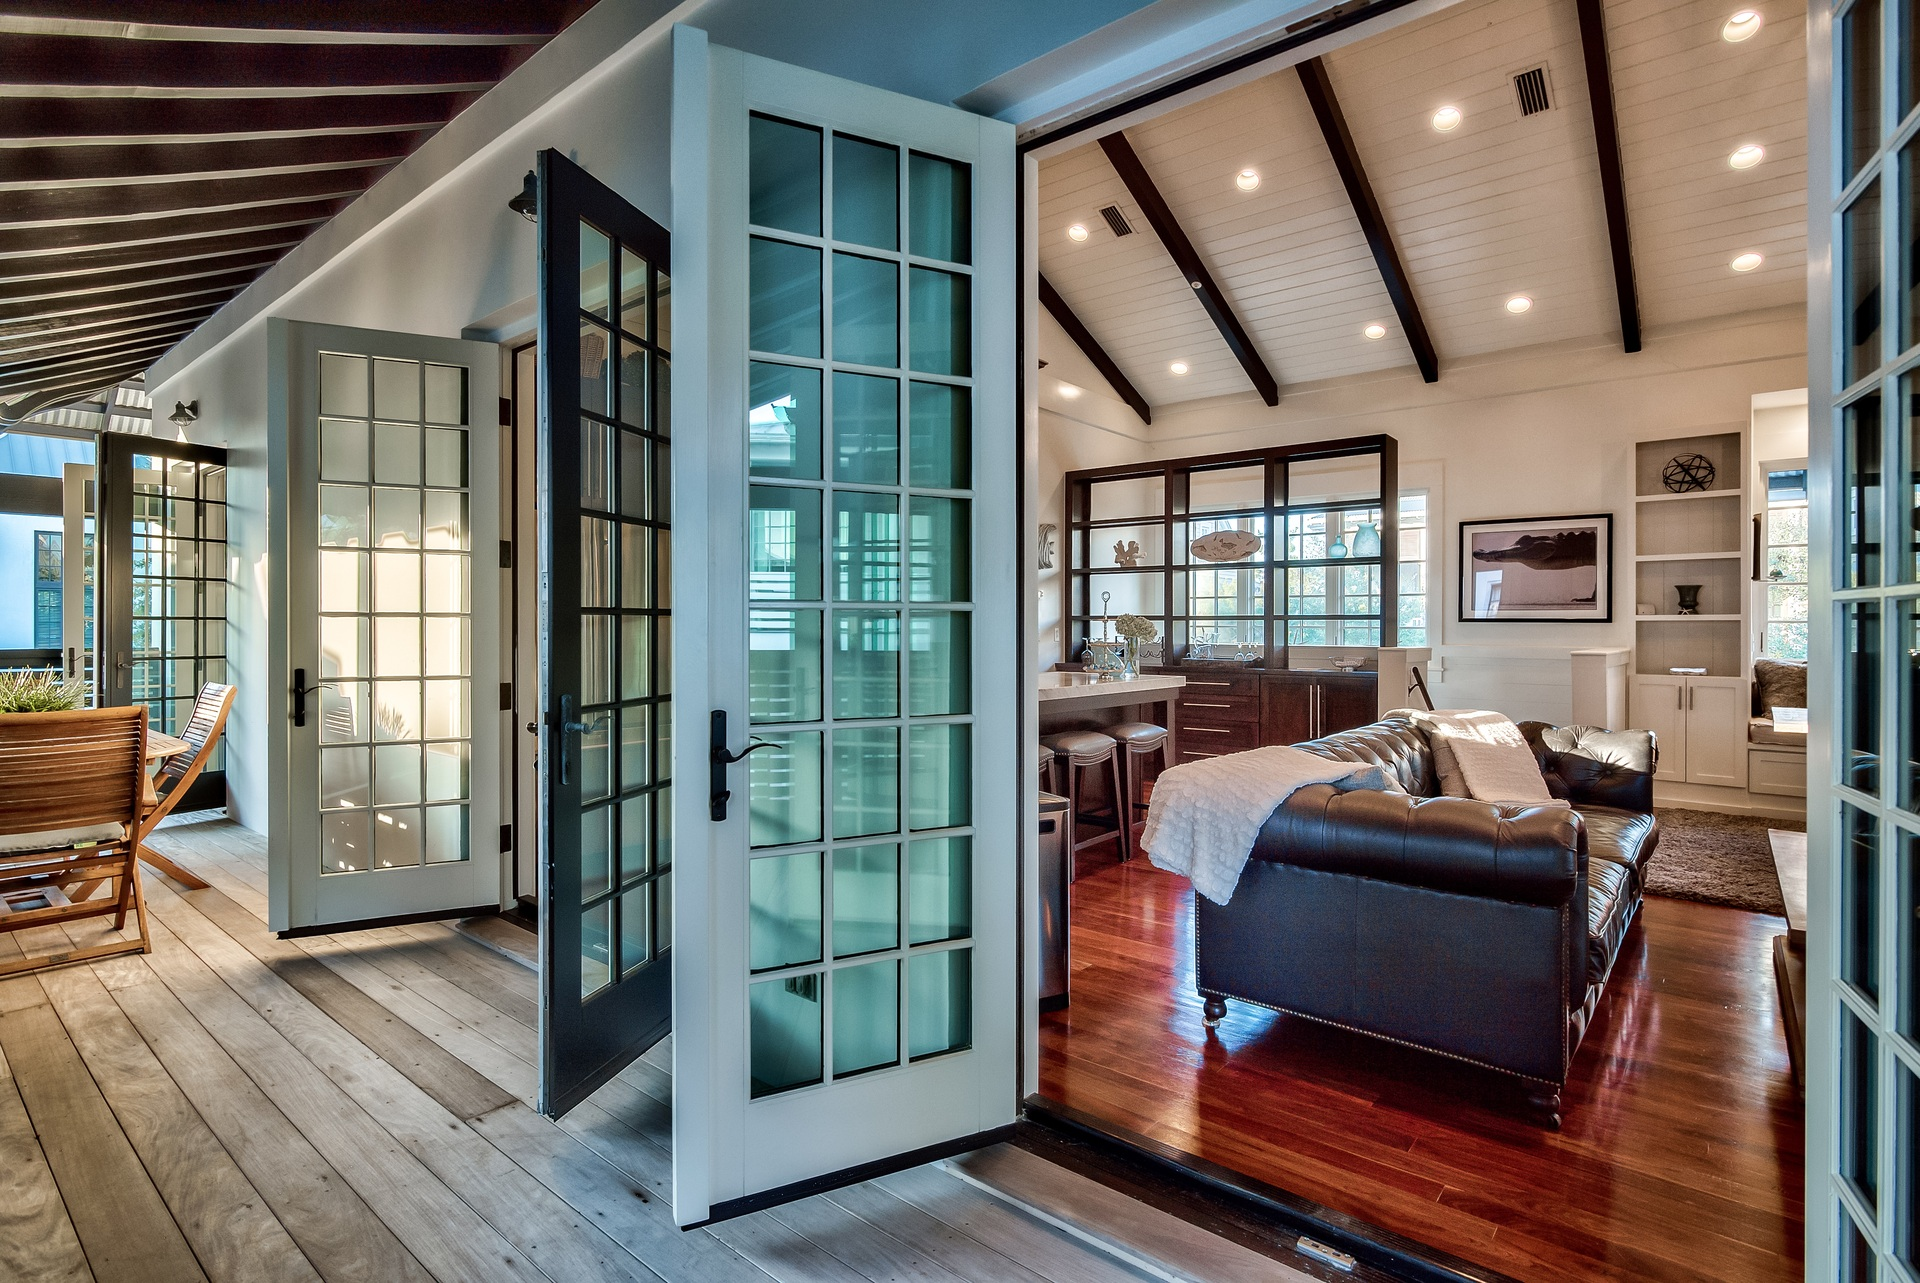 Amazing Large Balcony off of 2nd Floor Living Space